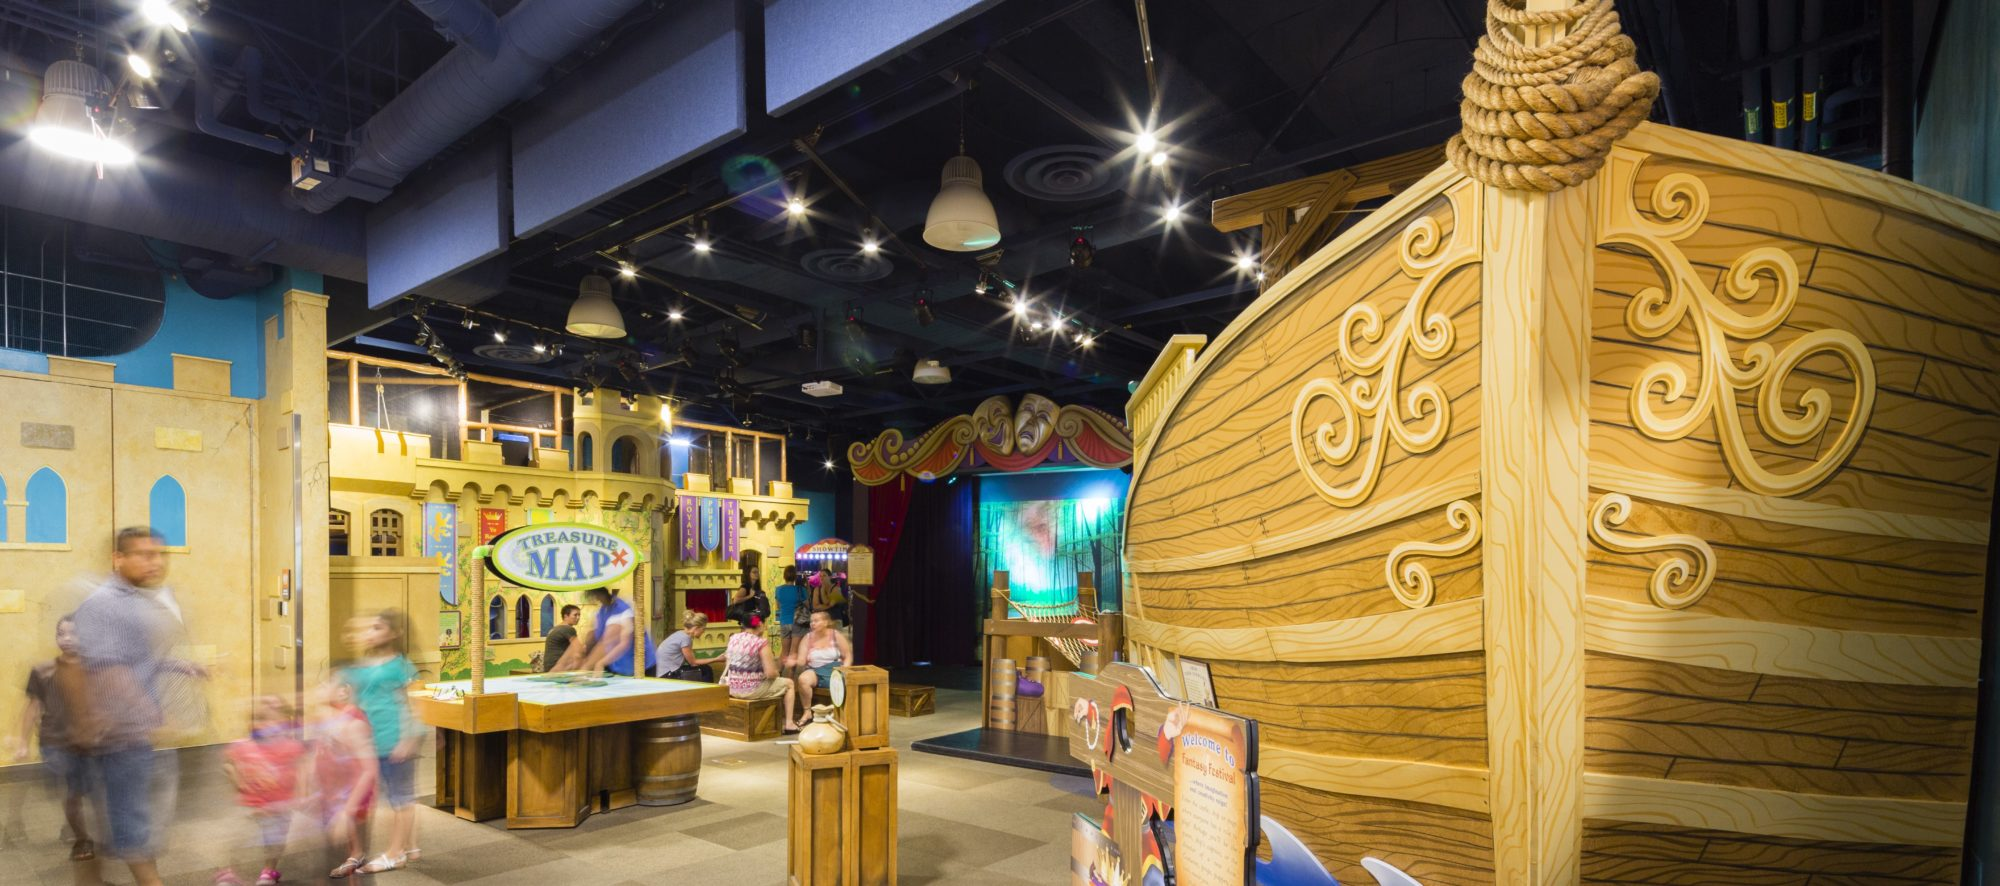 Children enjoying the exhibits at the DISCOVERY Children's Museum, designed by LGA Architecture.